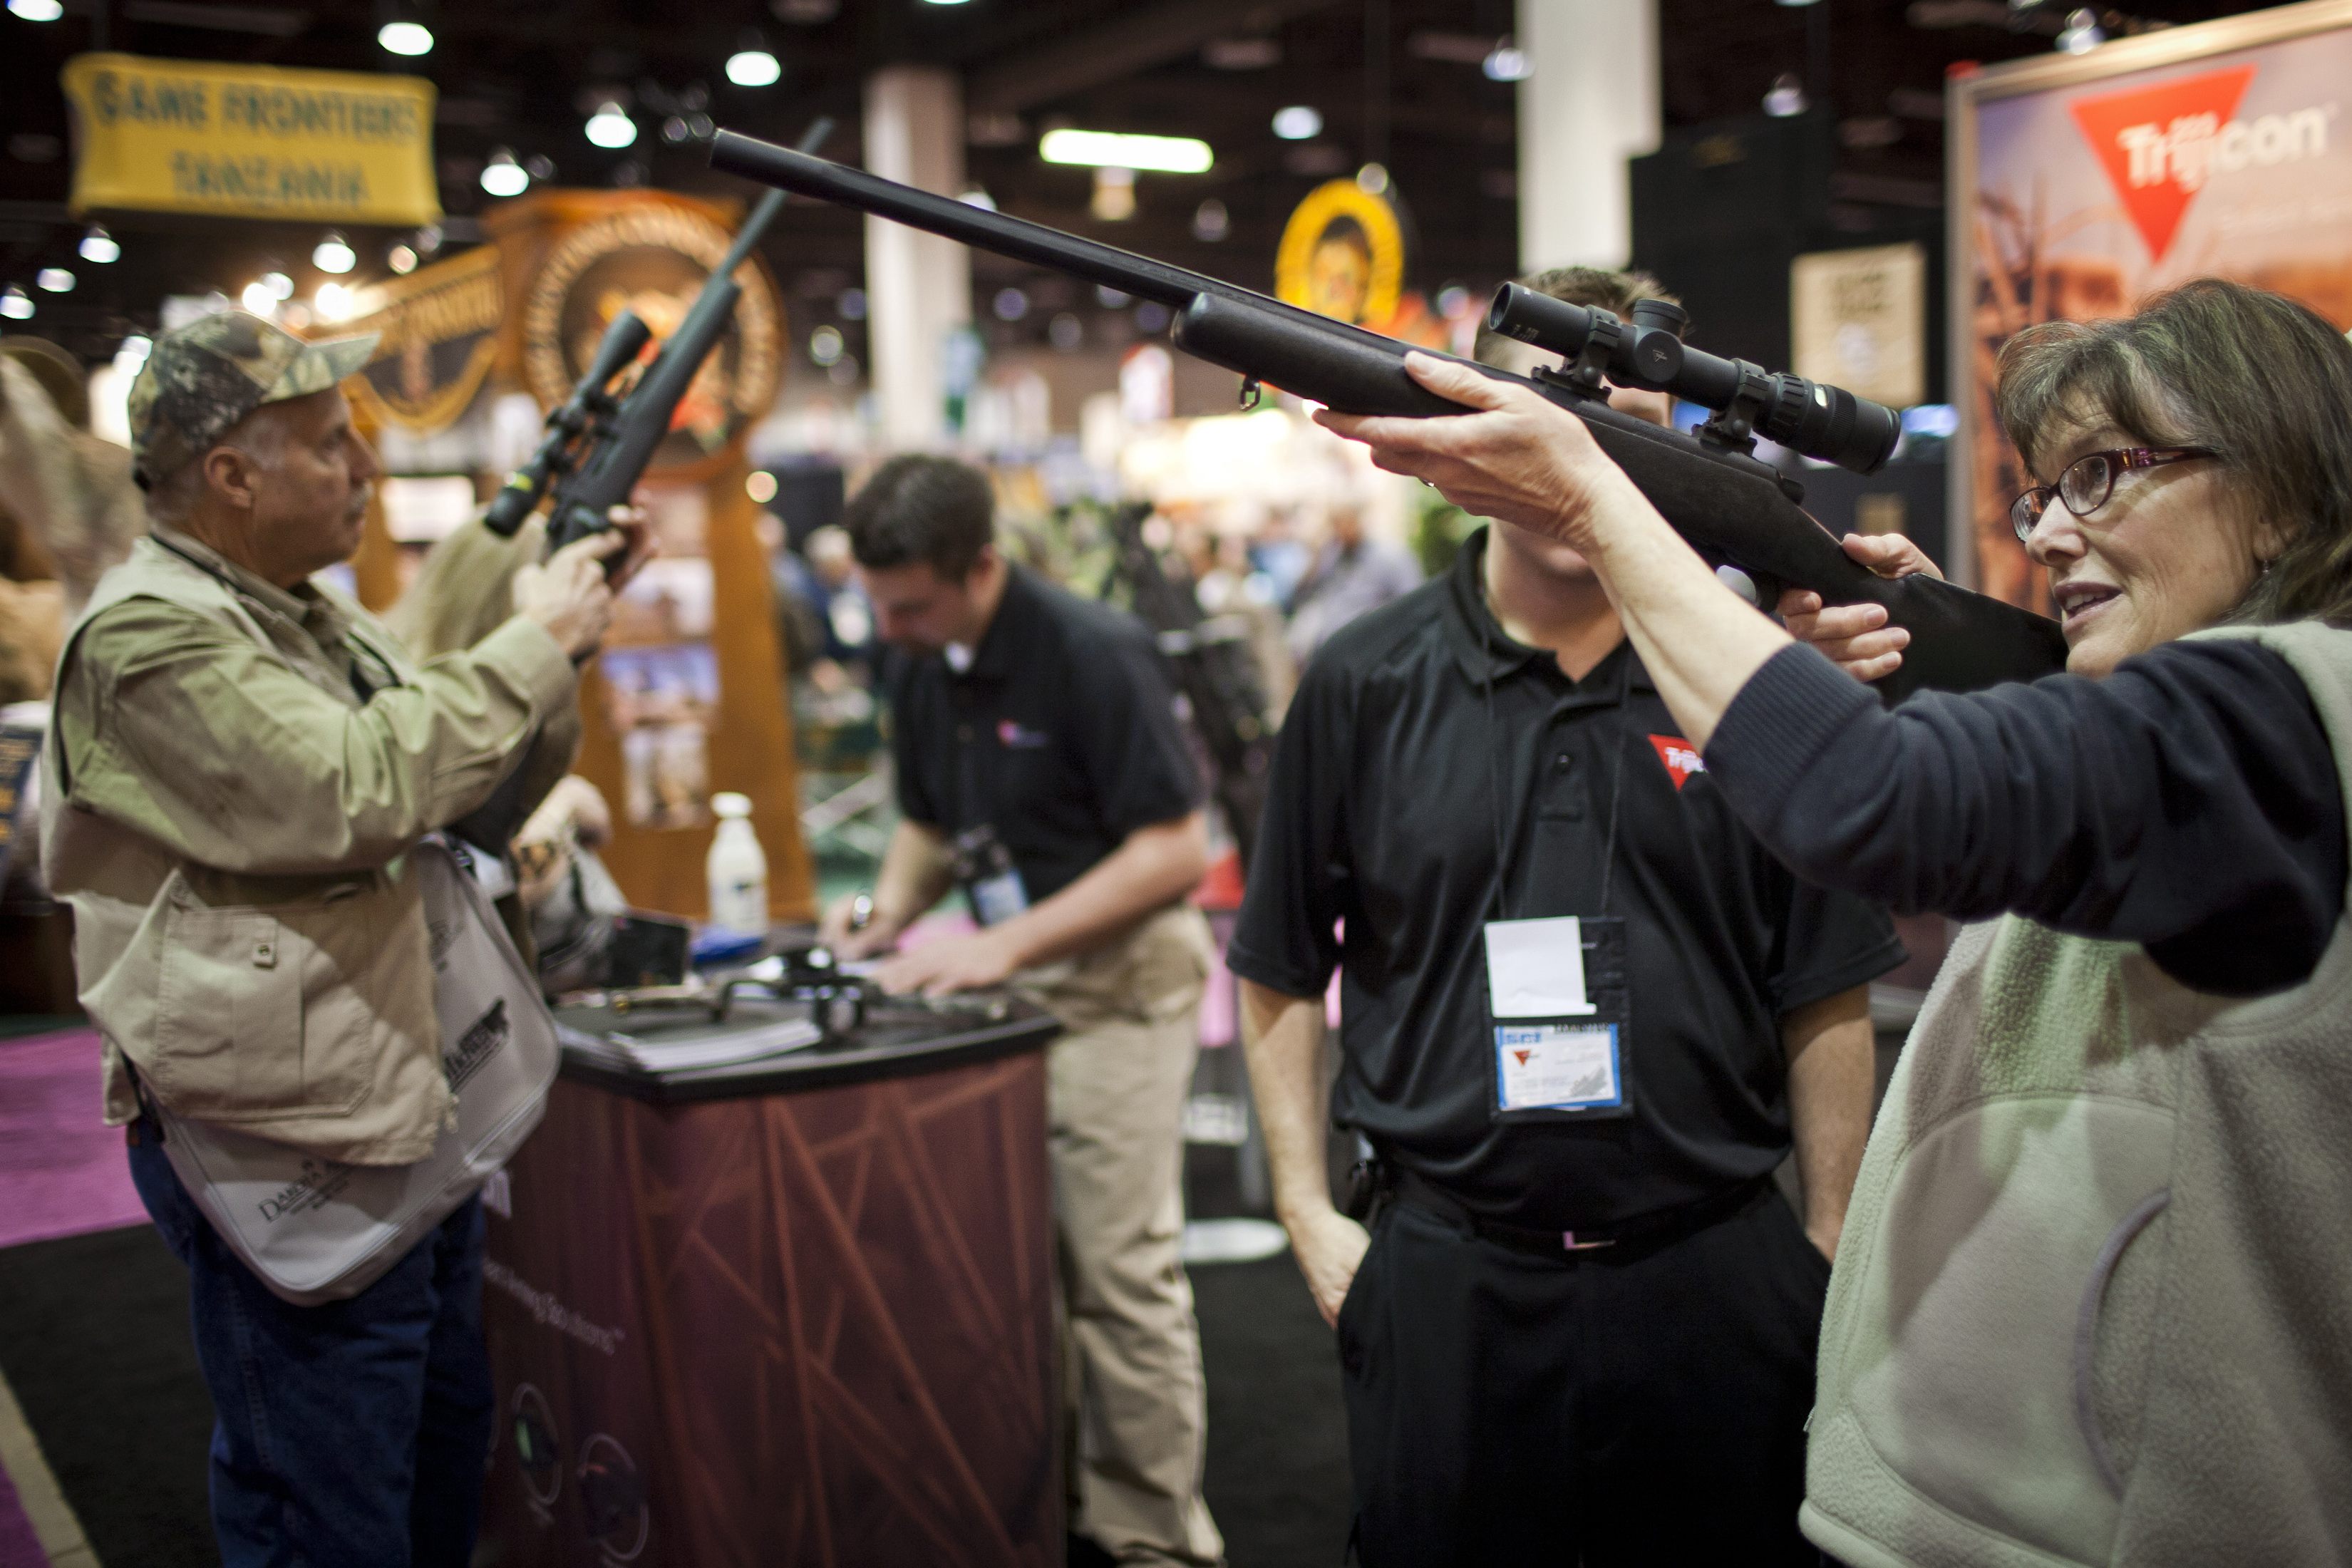 FILE - Kathy Hansen, right, tests a Trijicon rifle scope at the Safari Club International Convention in Reno, Nevada, Jan. 29, 2011.